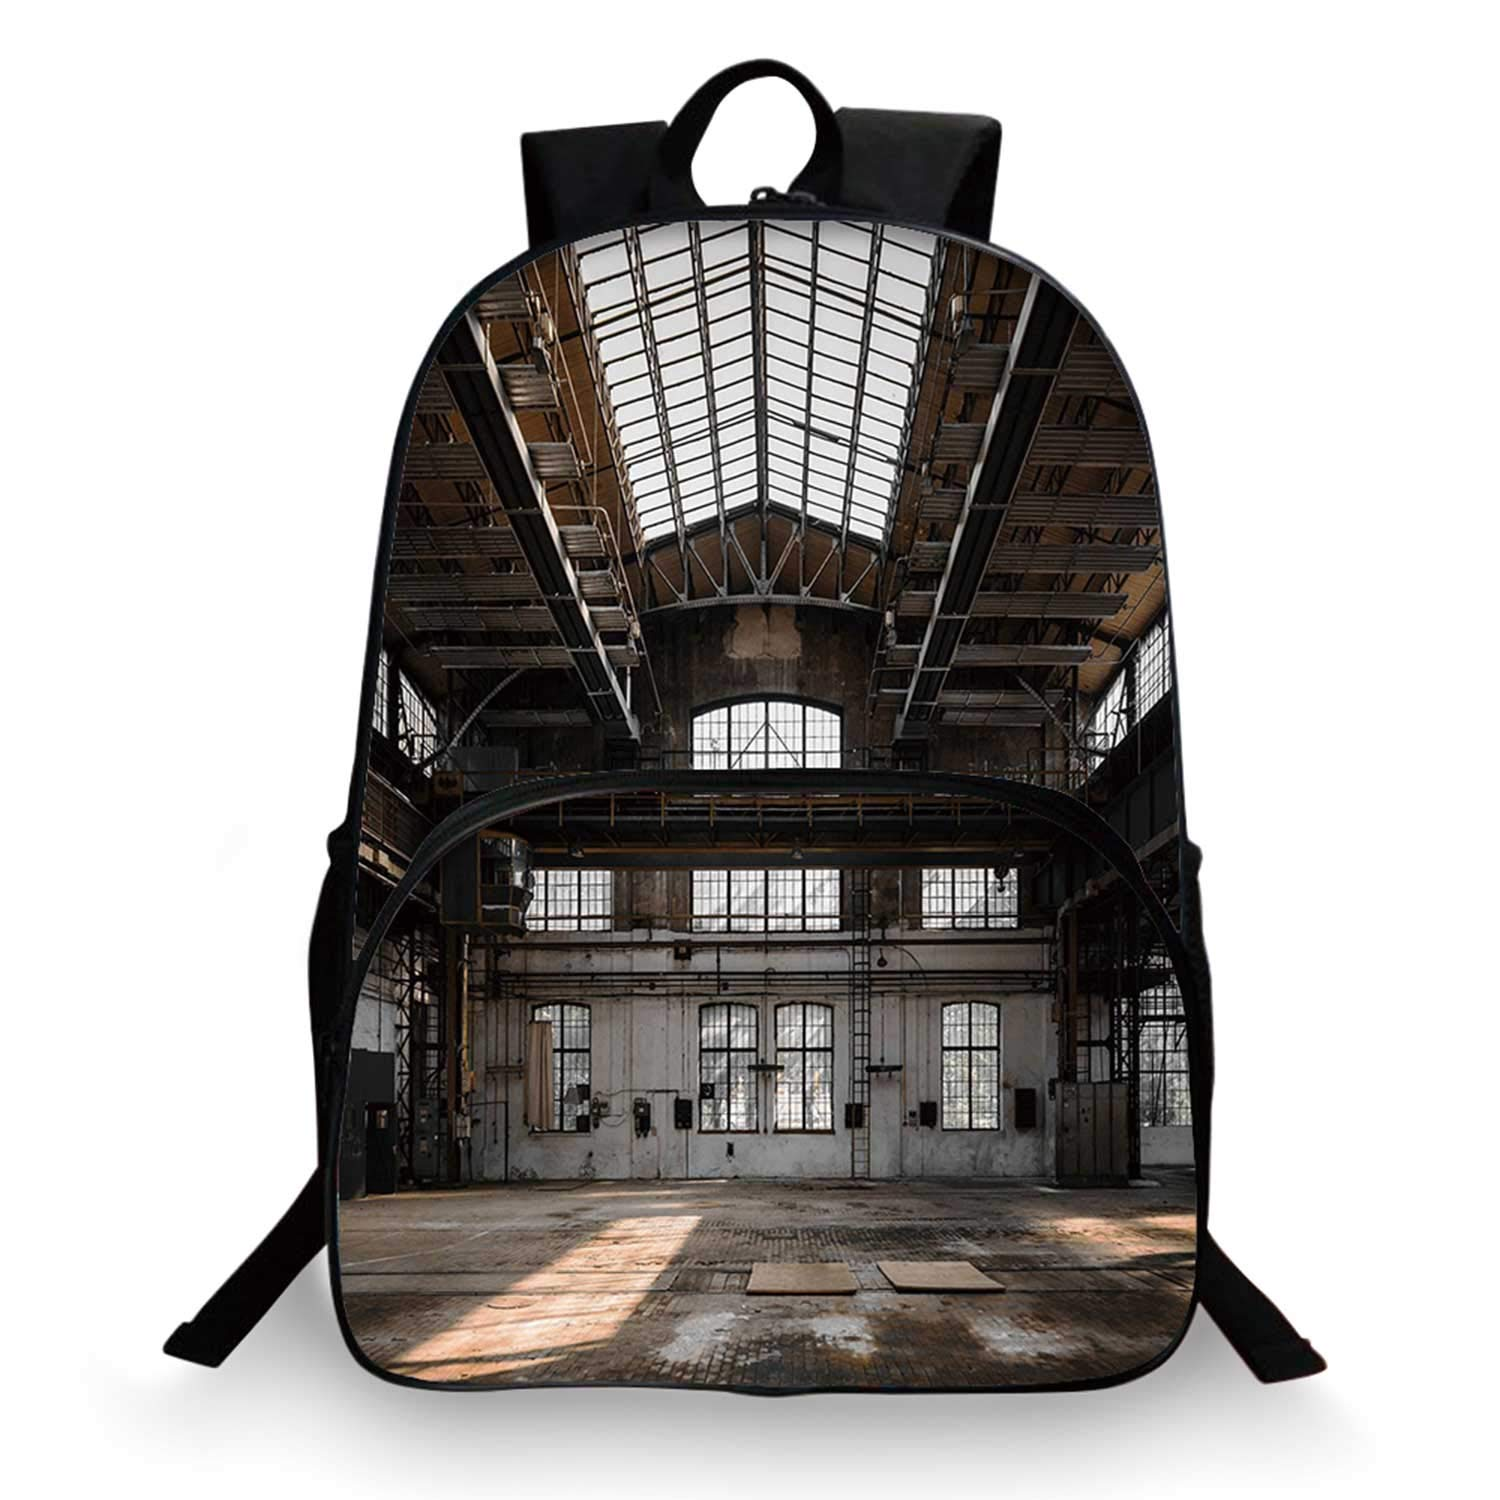 Industrial Decor Various Schoolbag,Inside a Hangar Old Architecture Construction Urban Timeworn Windows Decorative for student,11''Lx6''Wx15''H by C COABALLA